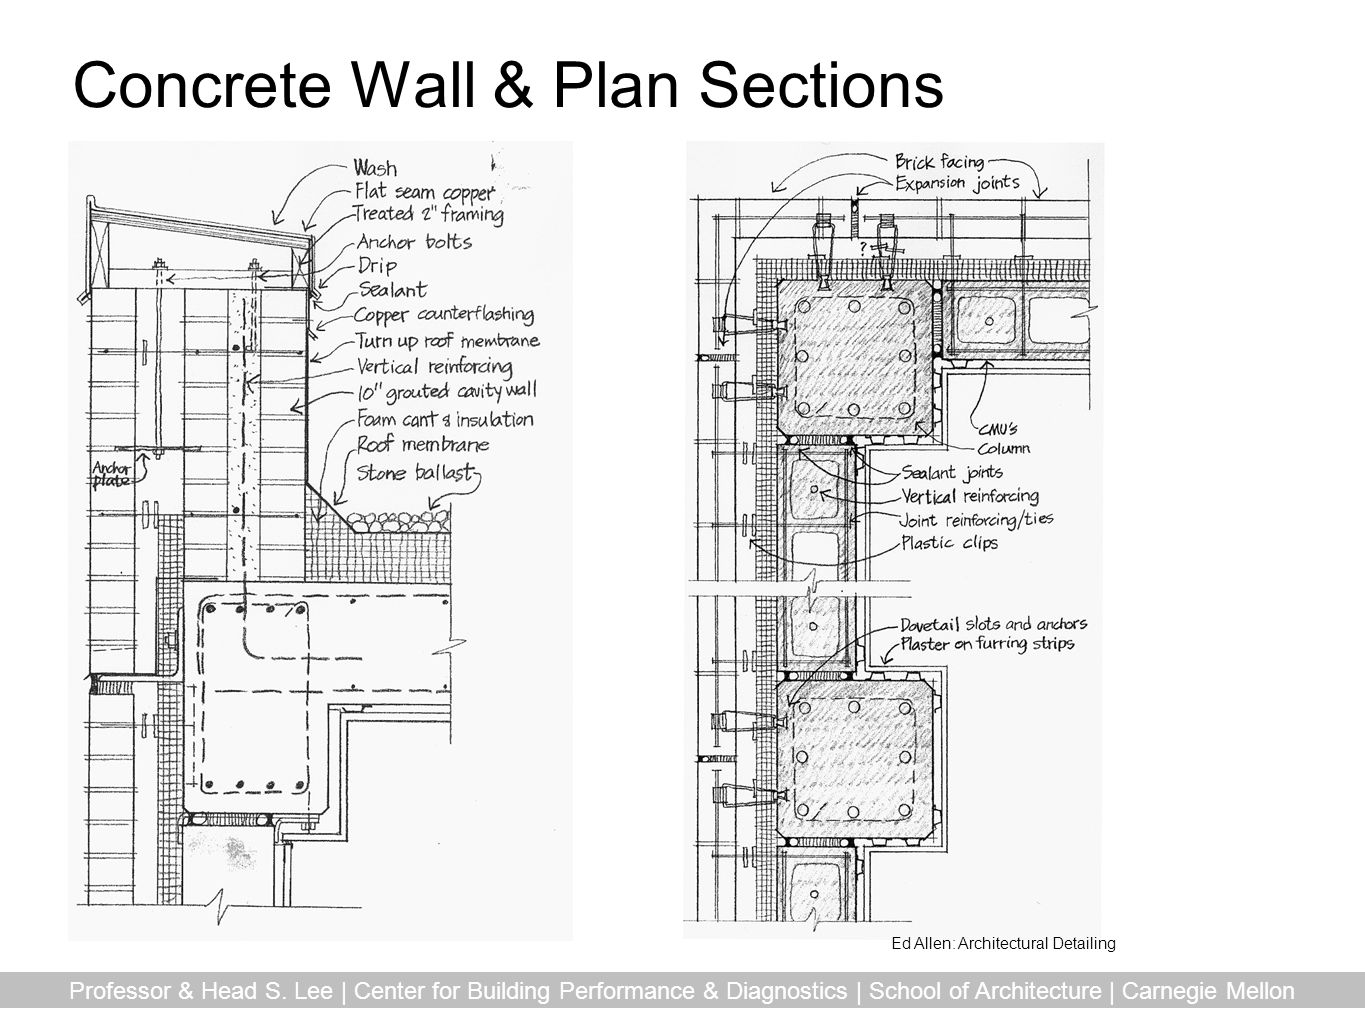 Concrete Wall & Plan Sections